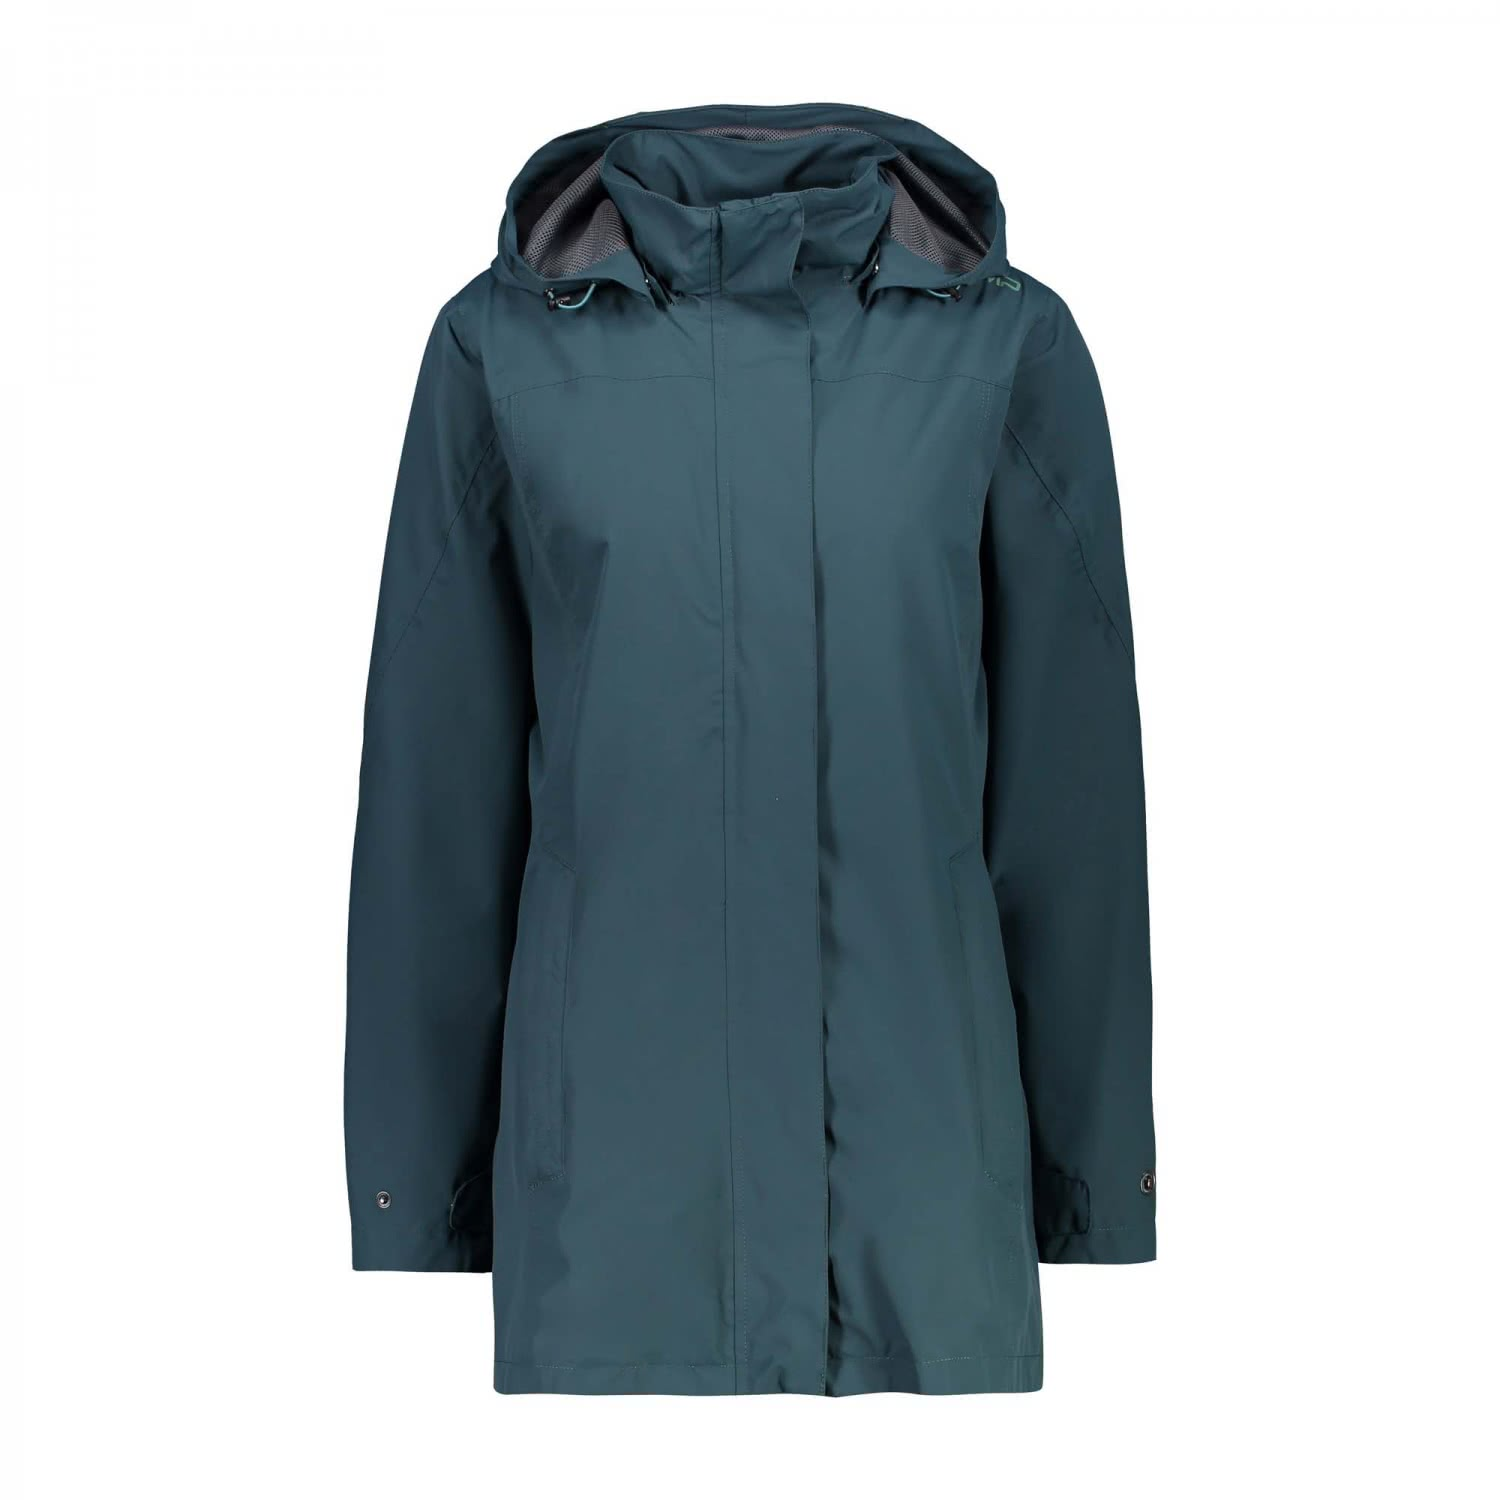 CMP Damen Regenjacke Woman Rain Jacket Button Hood 39X6646